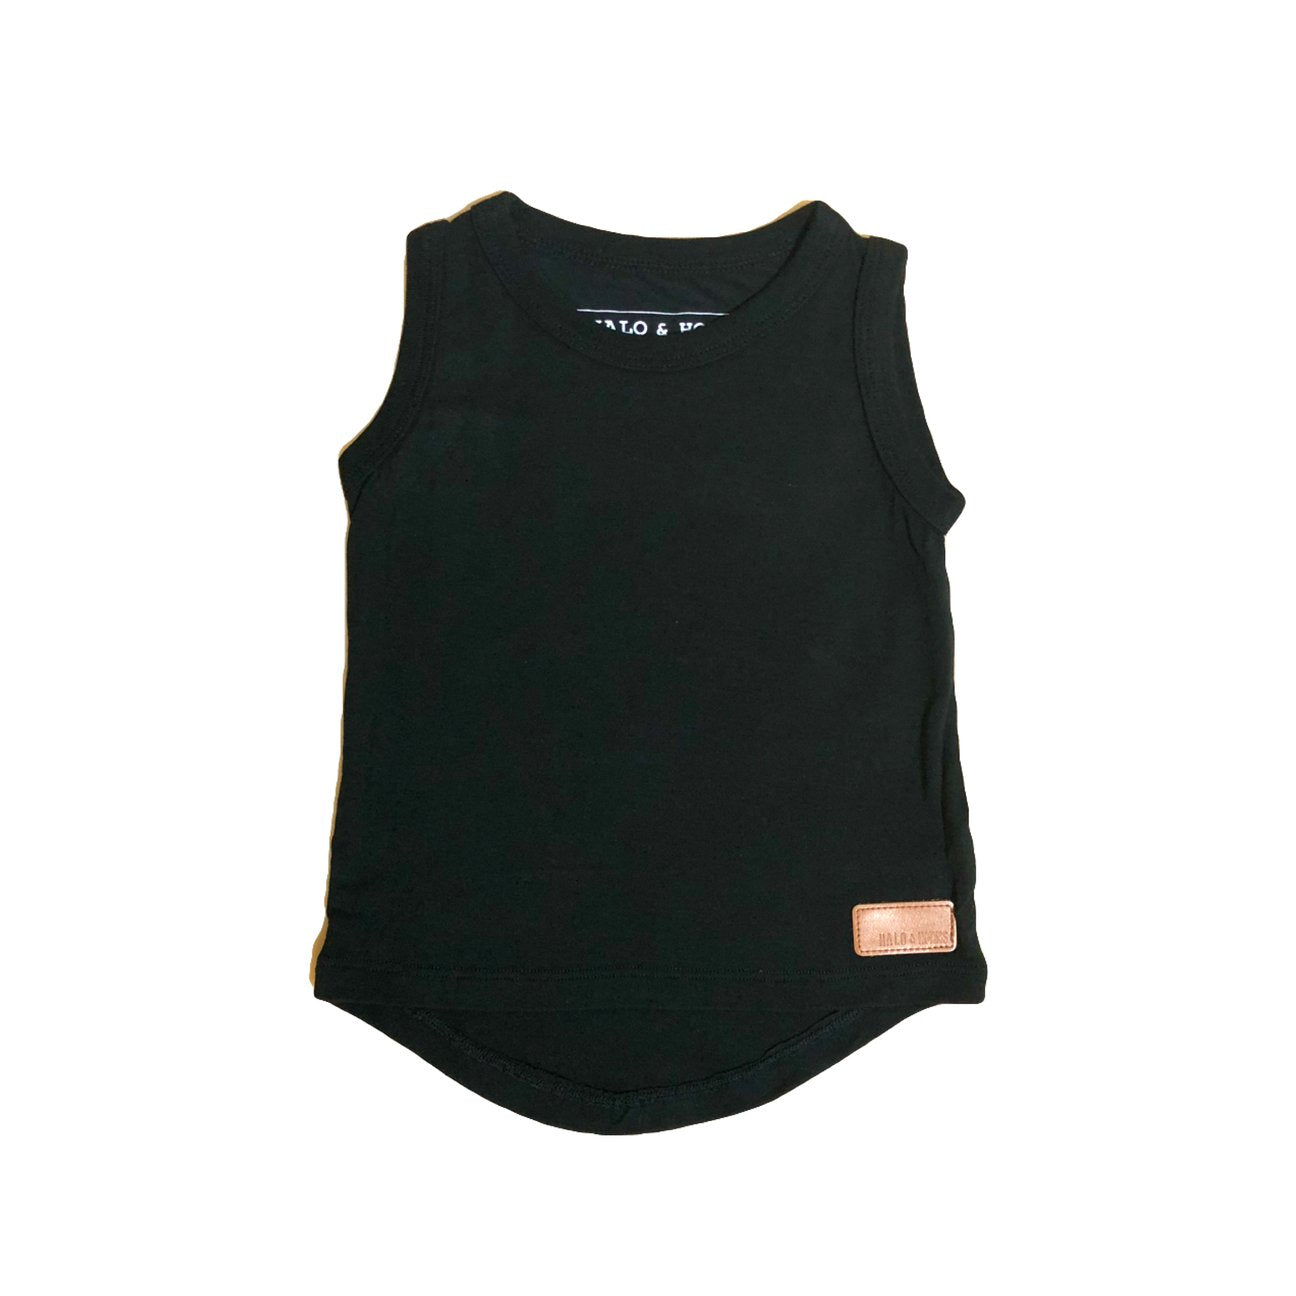 Halo & Horns bamboo black singlet tank top for baby and toddler